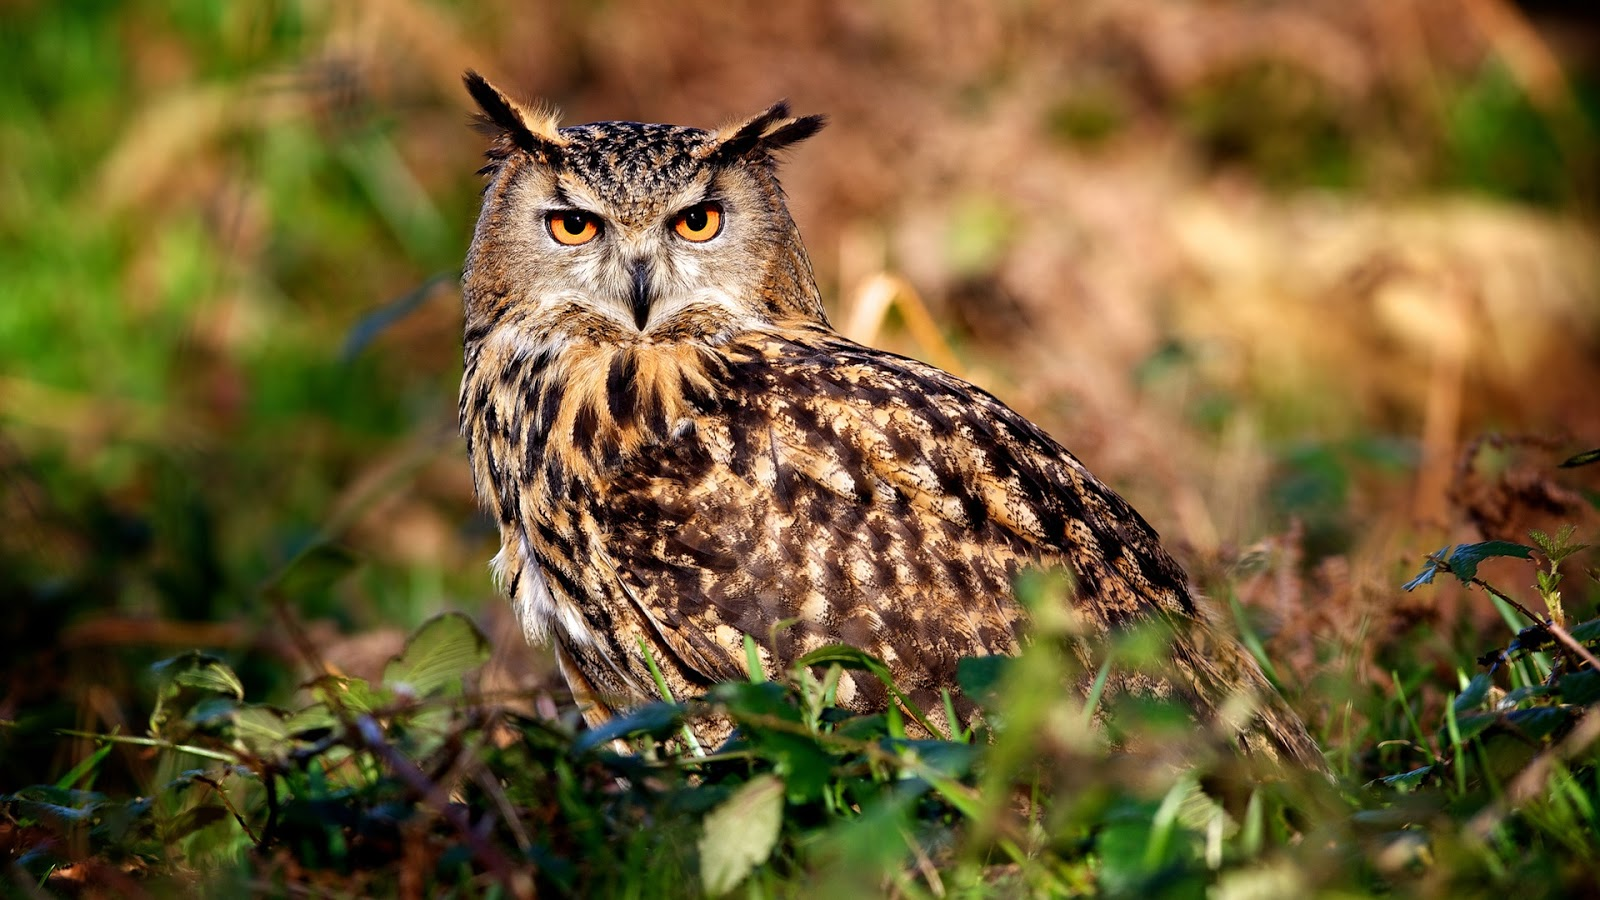 Beautiful   Wallpaper Home Screen Owl - Owl-s-eyes-nature-summer_1080  Collection_909126.jpg